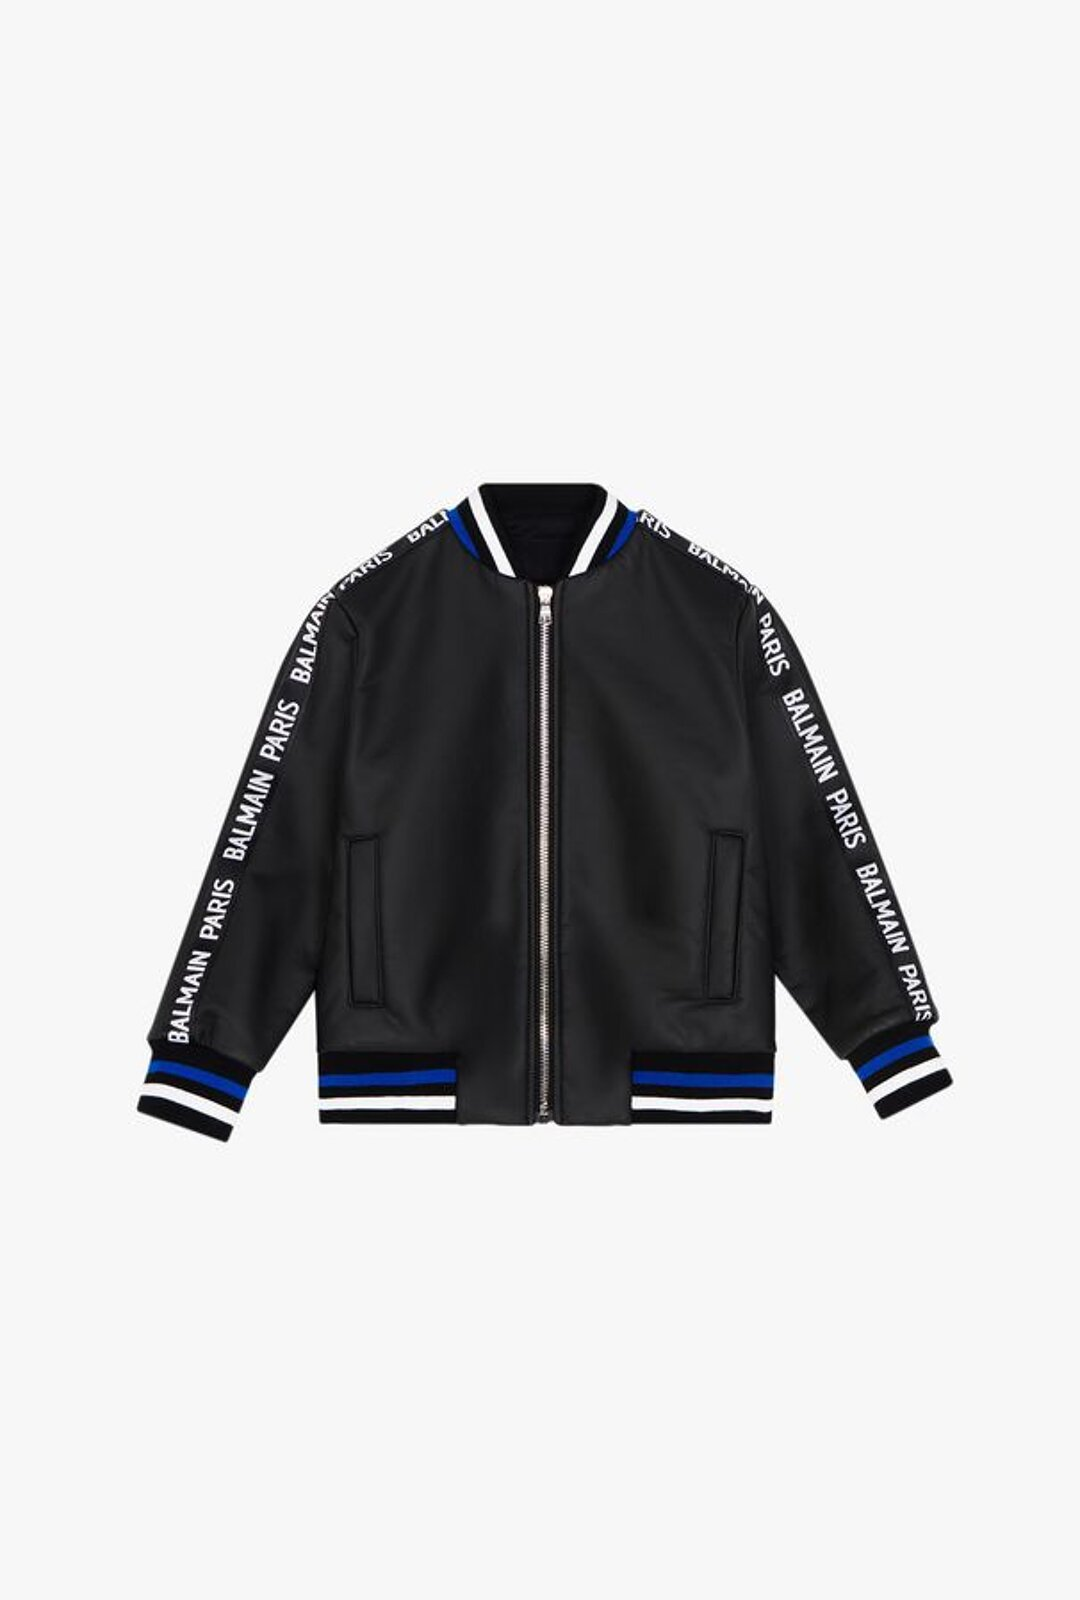 Black Jacket With Balmain Logo - Balmain Junior